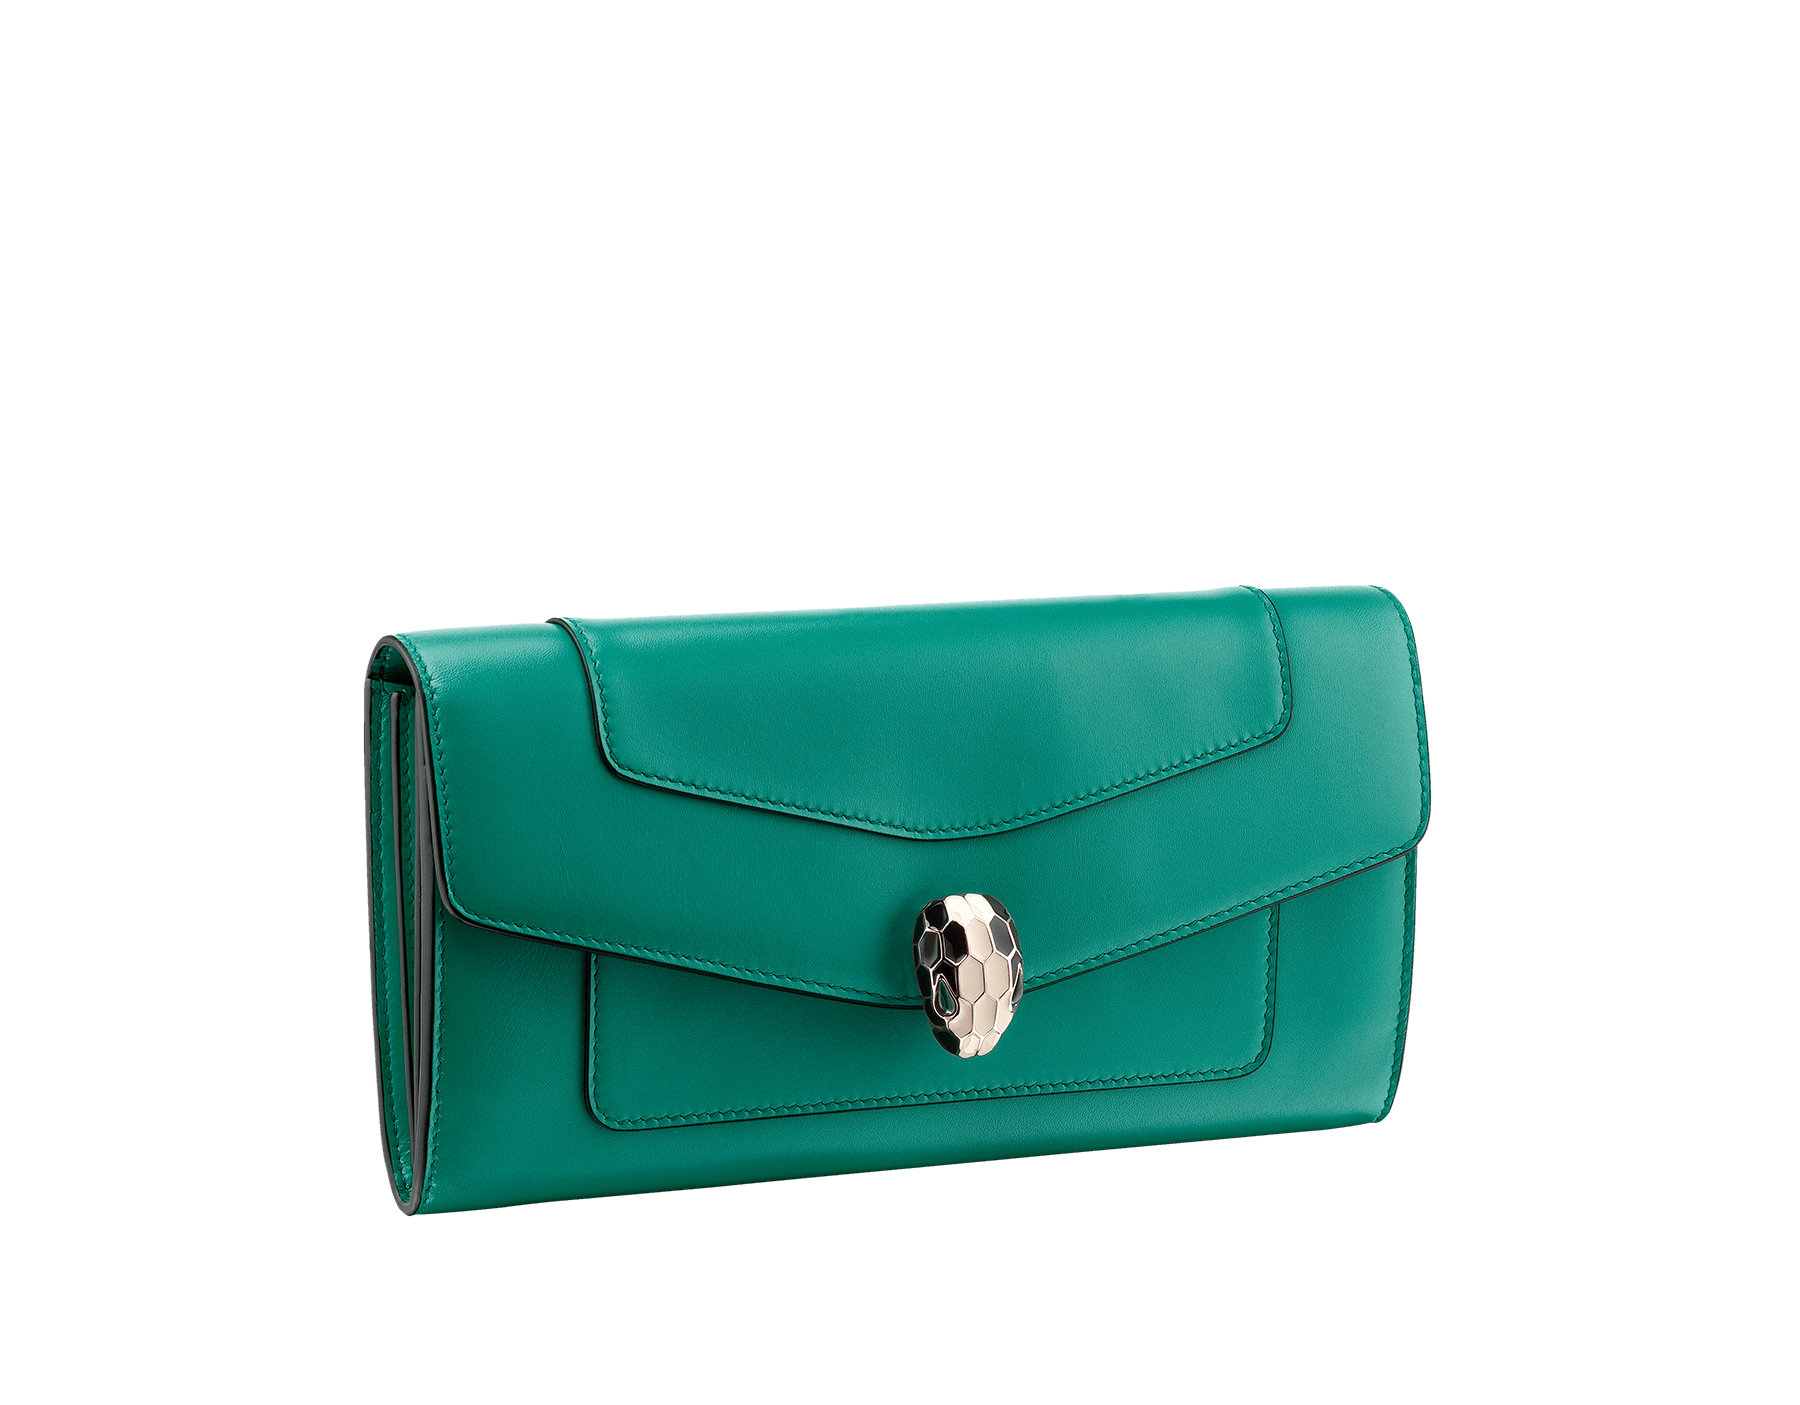 Wallet pochette in emerald green and violet amethyst calf leather with brass light gold plated hardware.Serpenti head stud closure in black and white enamel with eyes in green malachite. 280354 image 1